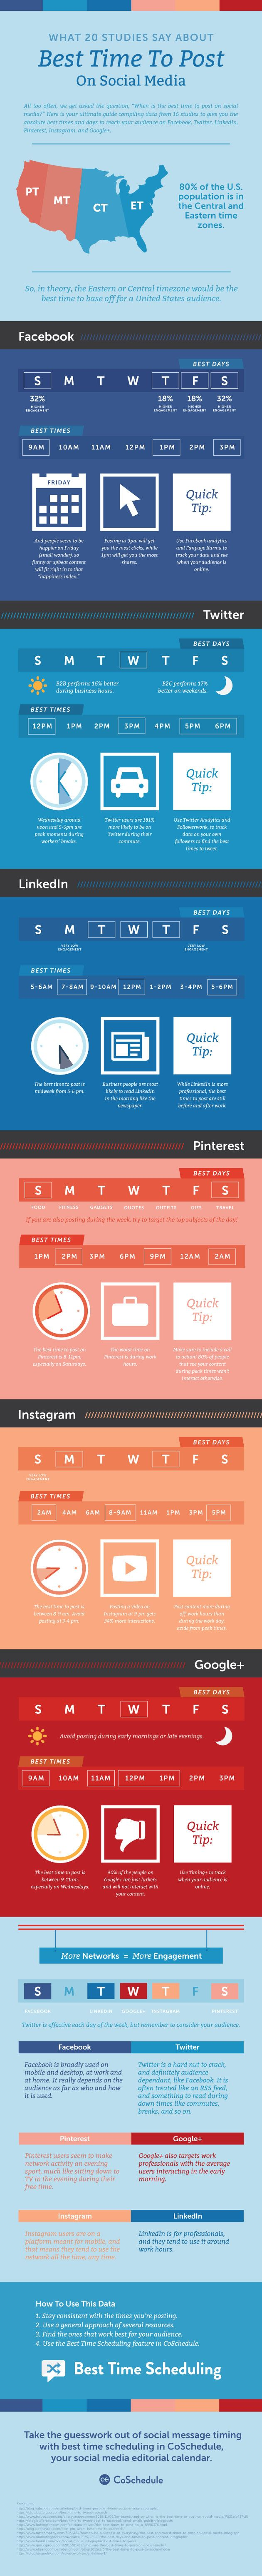 .@coschedule compiled various reports for best times to post on #SocialMedia platforms into one #infographic.